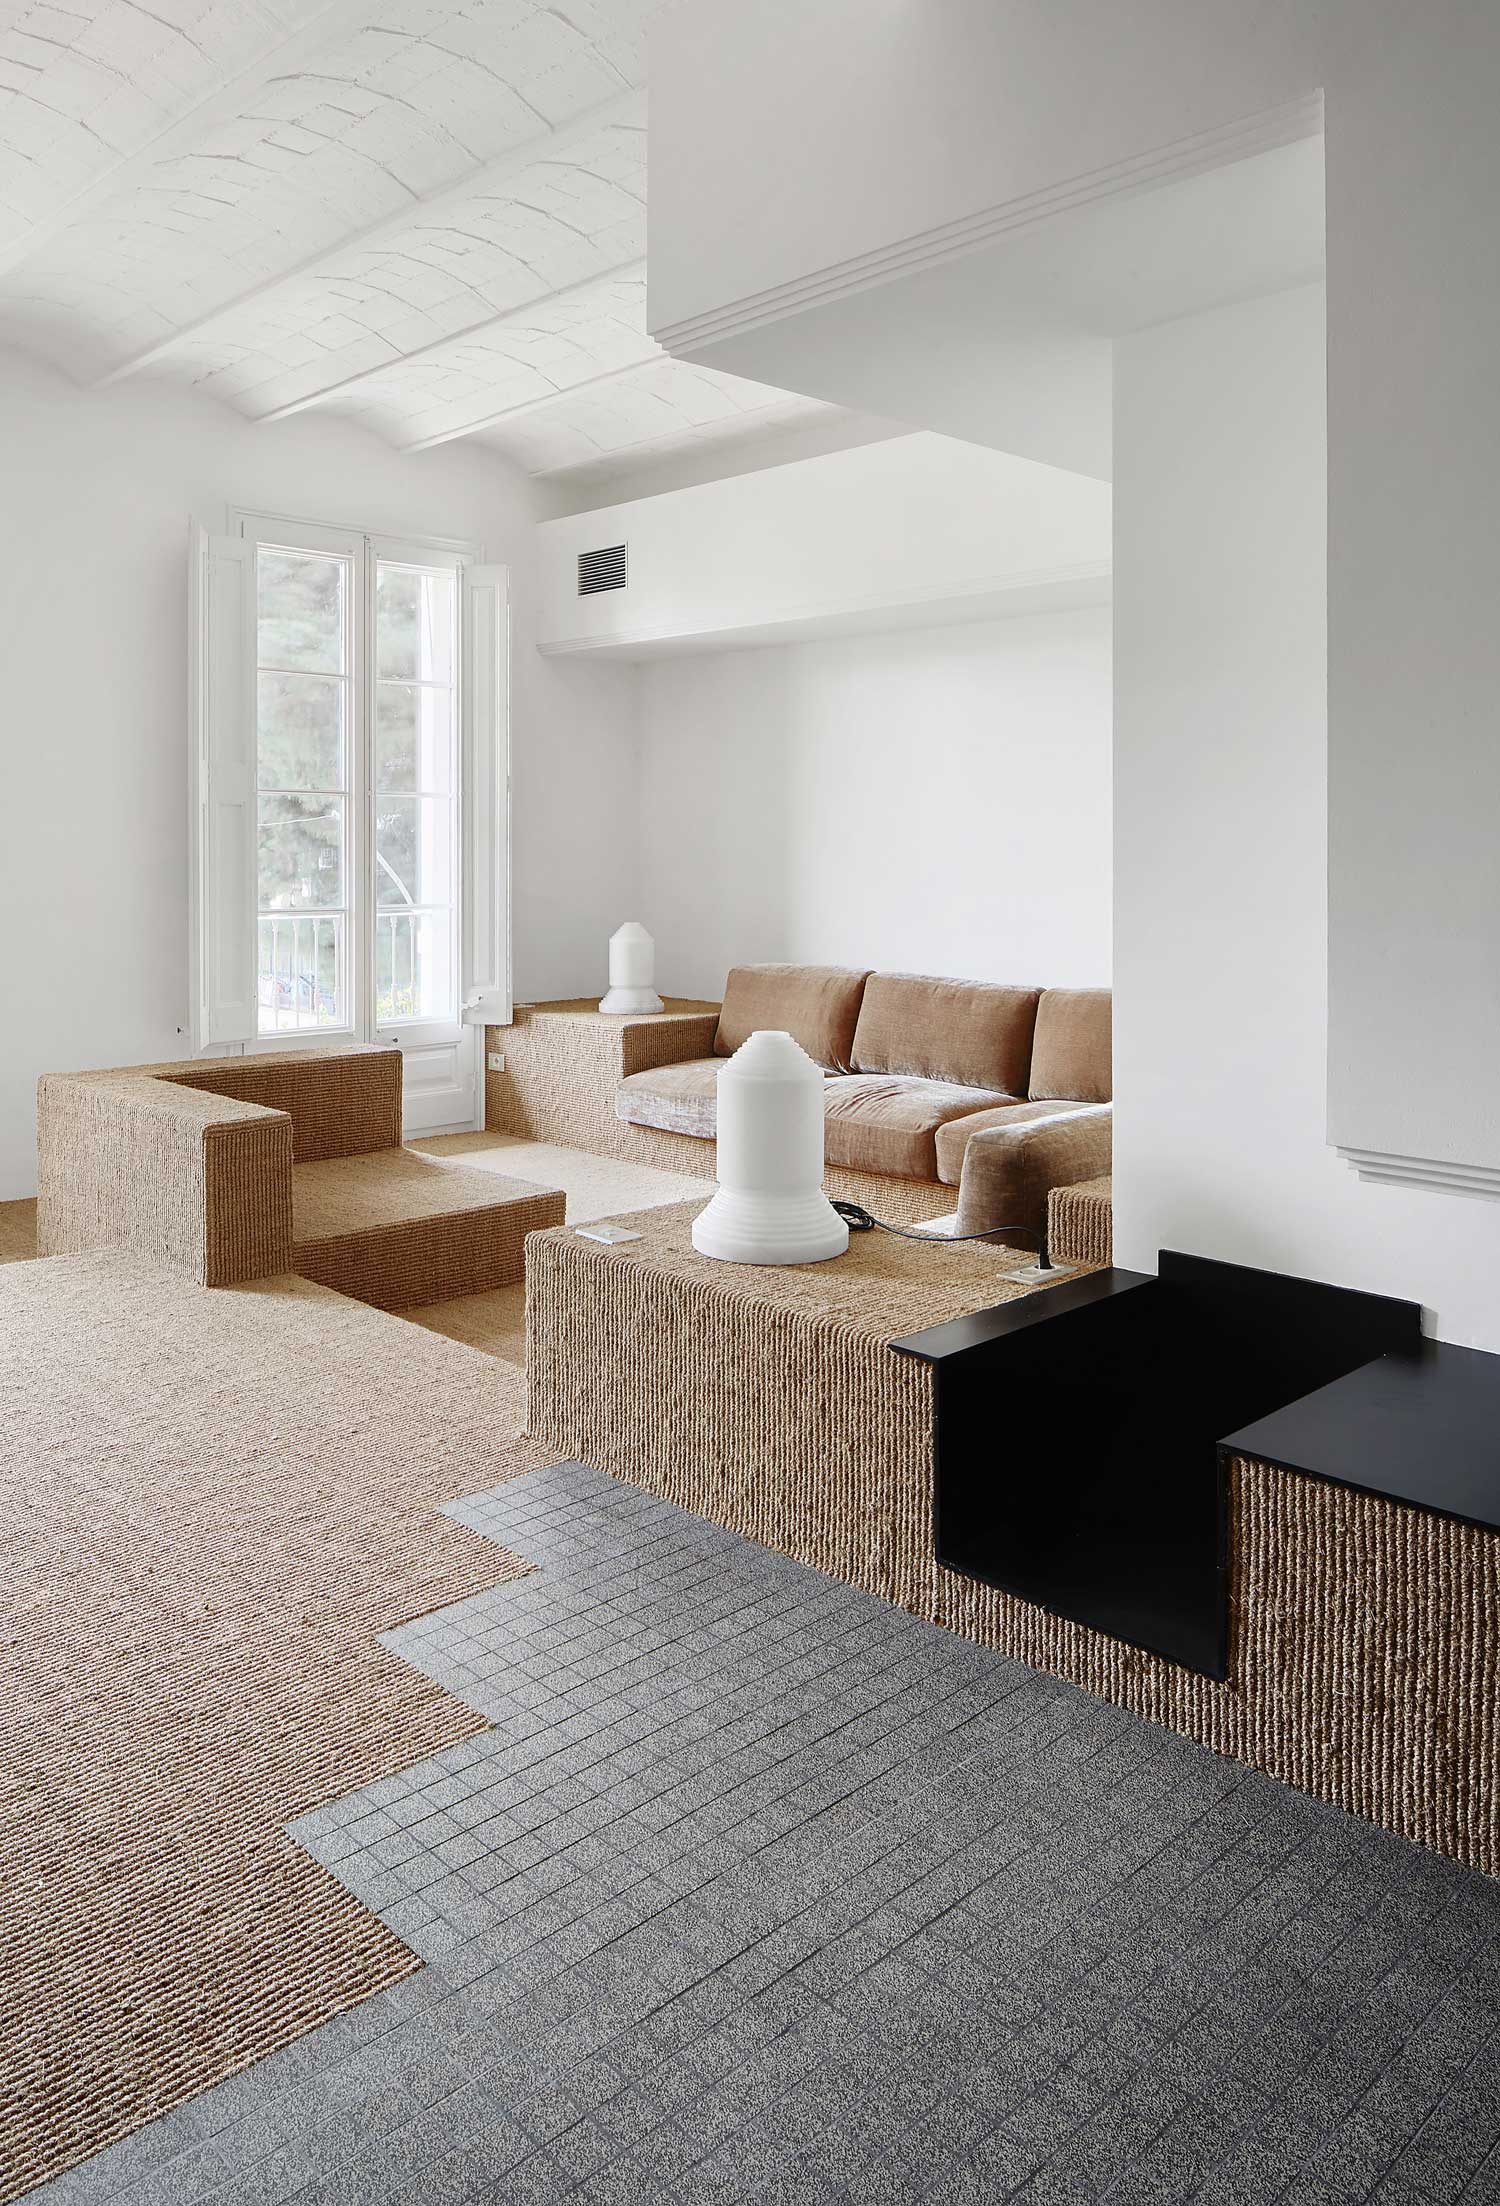 Apartment on Girona Street, Barcelona by Arquitectura G   Yellowtrace